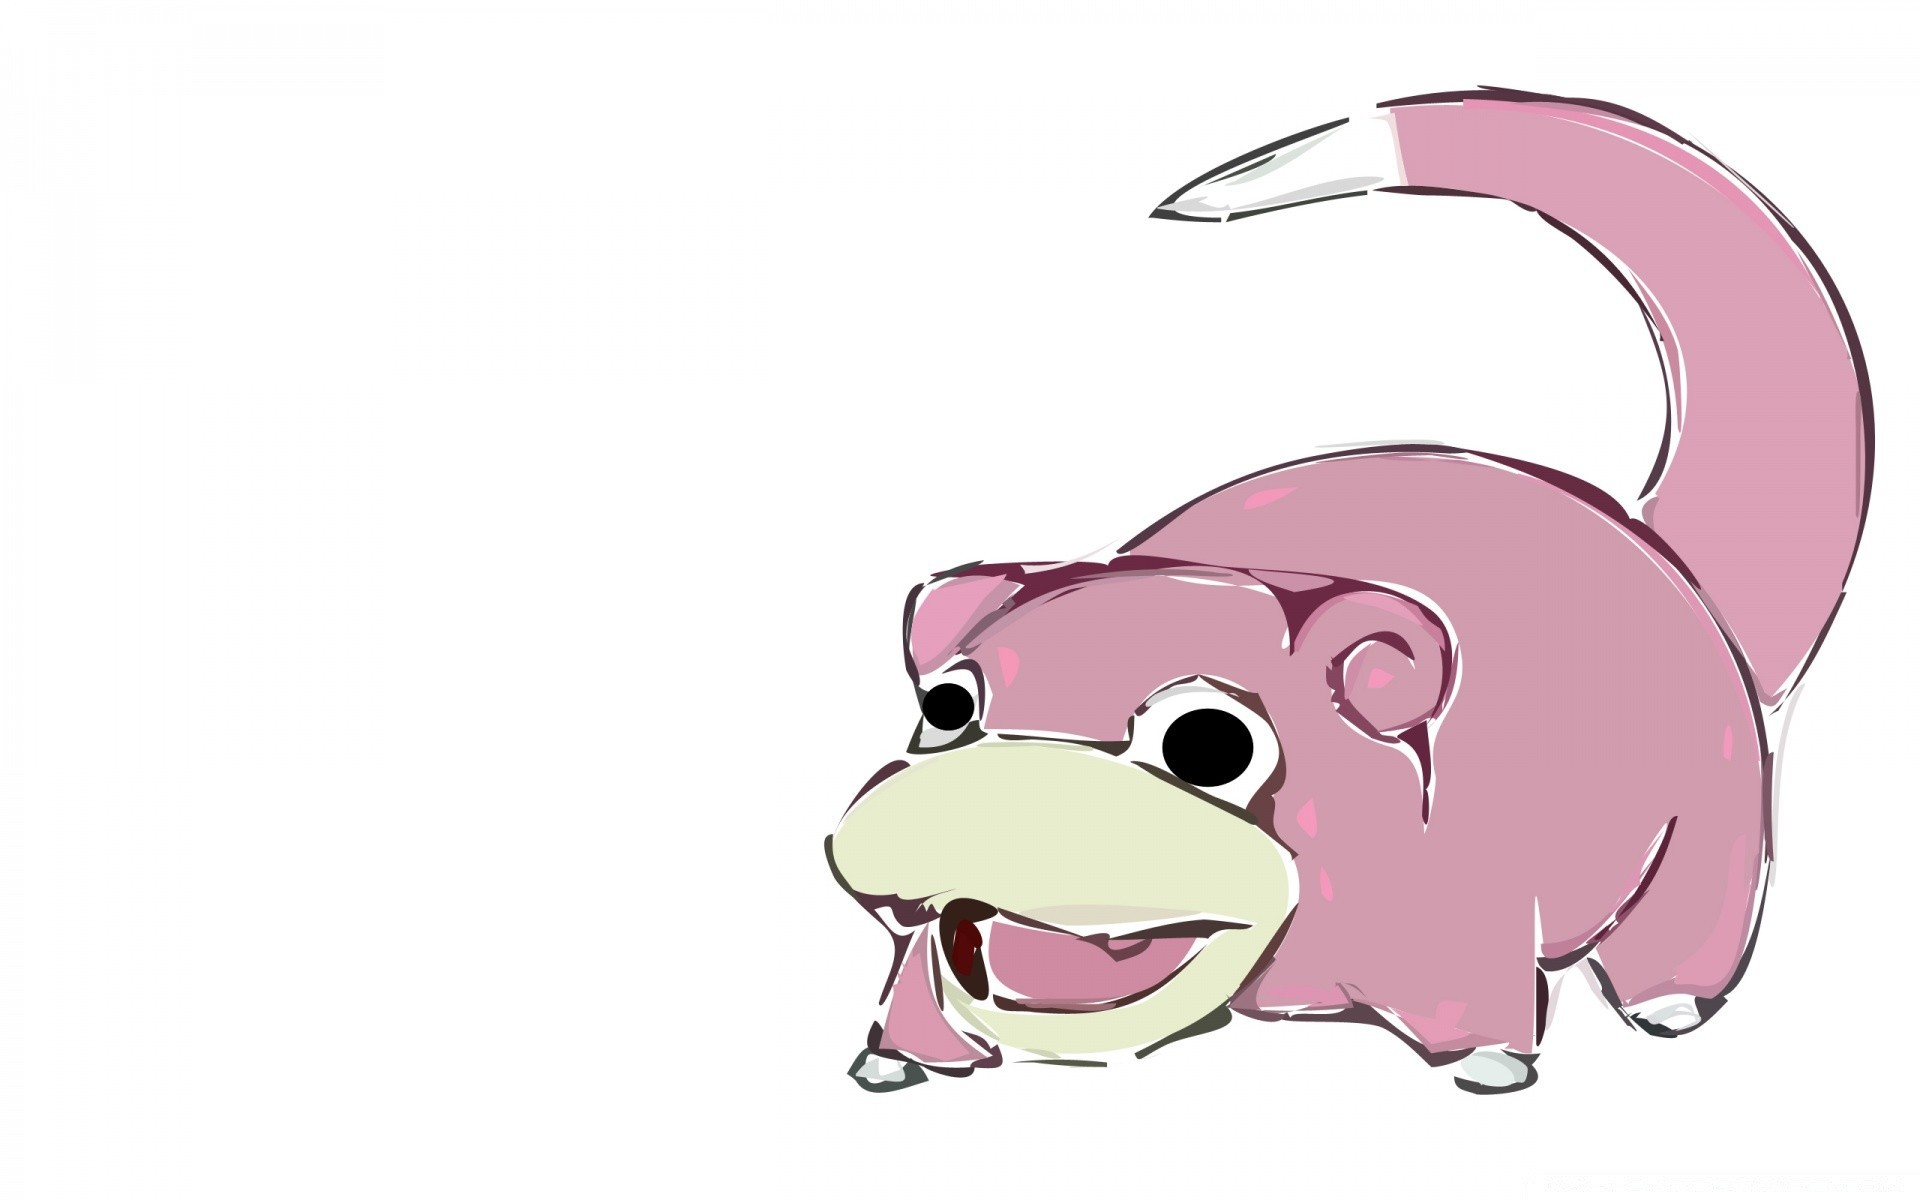 Anime Isolated Cute Sketch Funny Illustration Animal Character